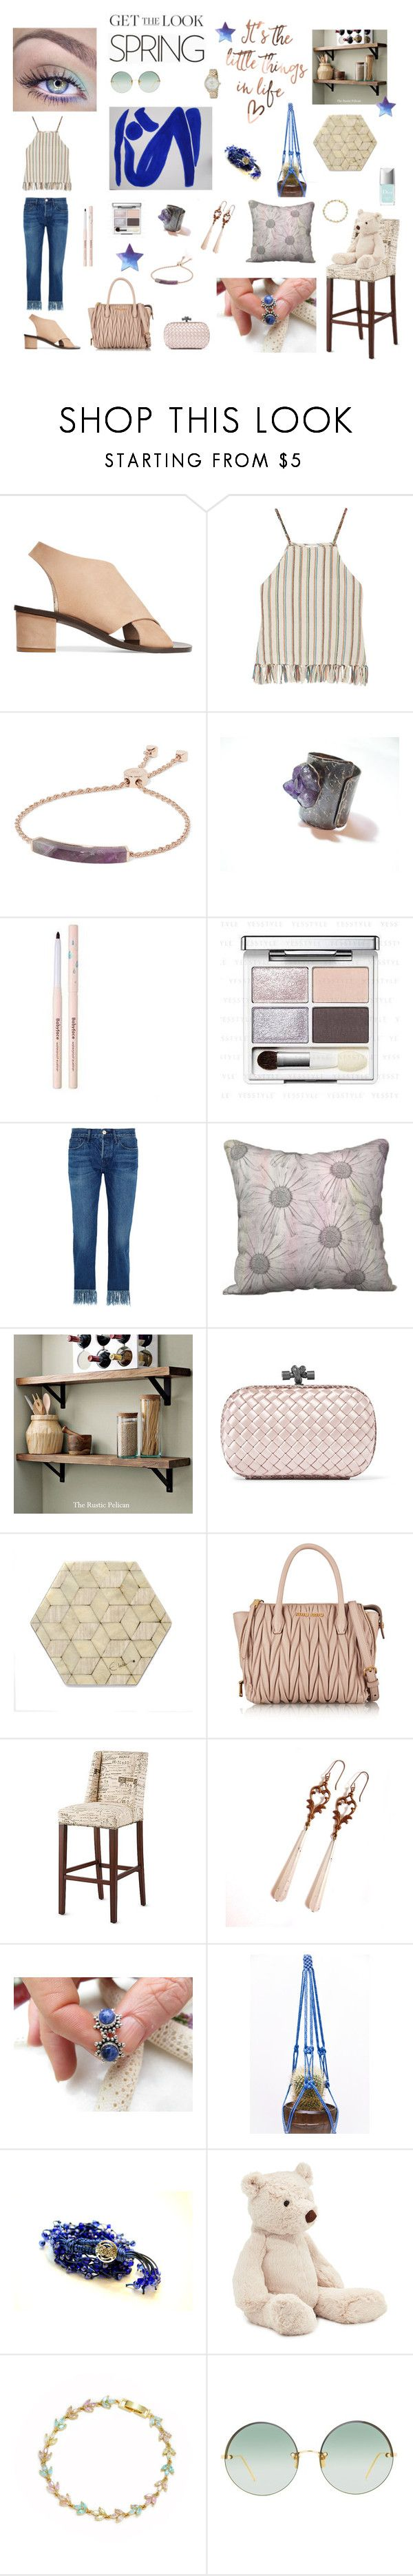 """""""Smell of Spring"""" by xena-style ❤ liked on Polyvore featuring All Tomorrow's Parties, Miguelina, Monica Vinader, 3x1, Rustico, Bottega Veneta, Dessous, Miu Miu, Improvements and Jellycat"""